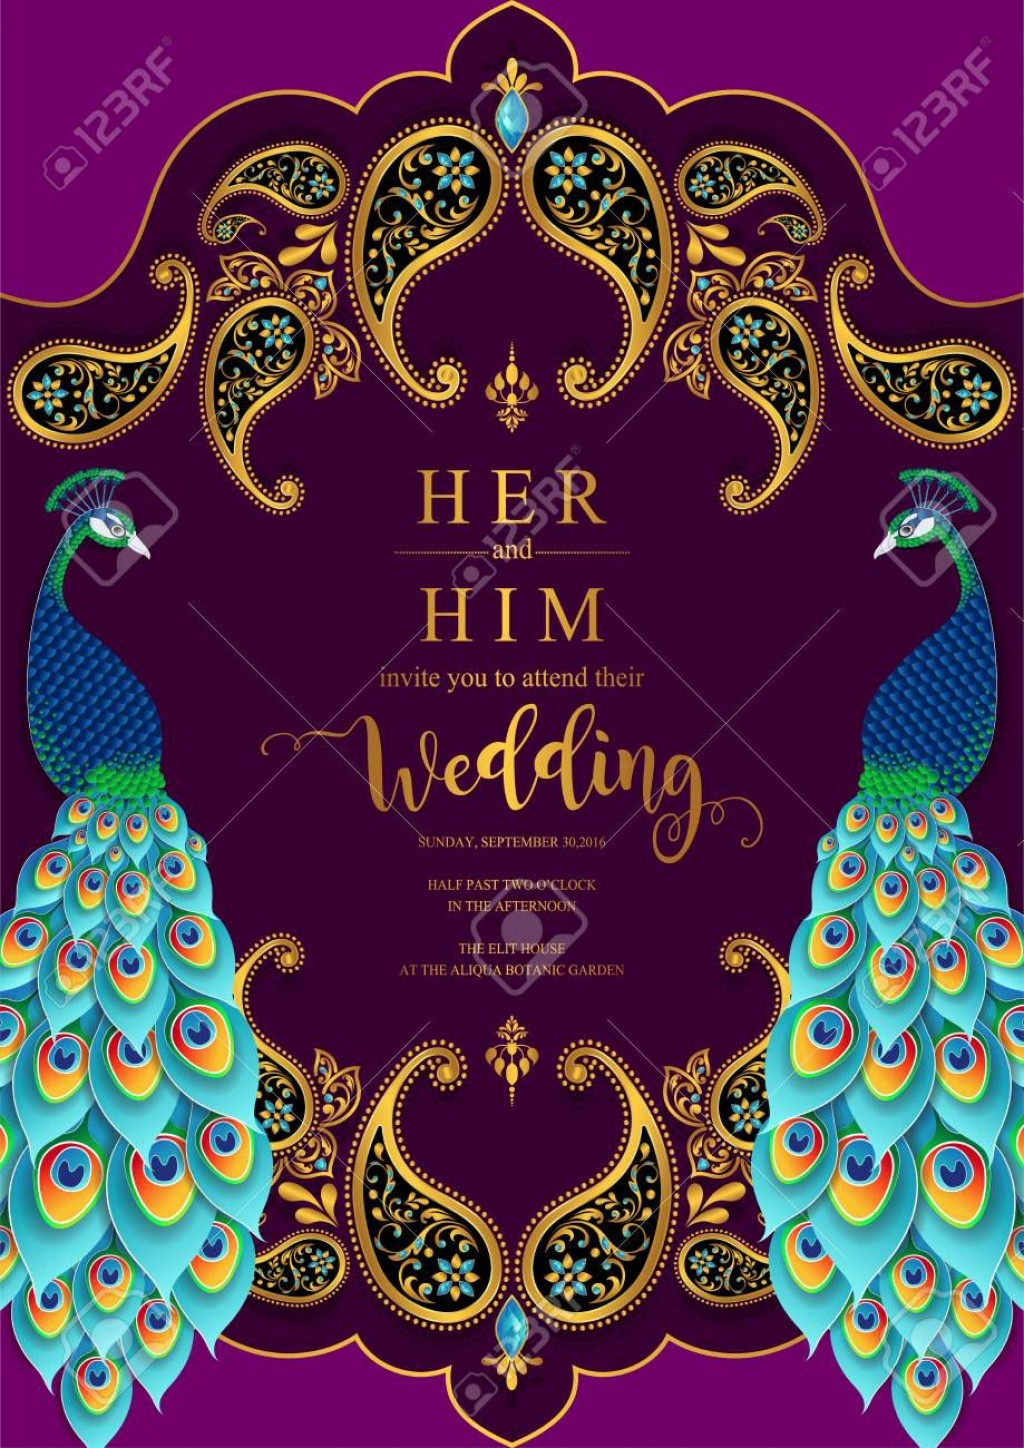 004 Astounding Indian Wedding Invitation Template Photo  Psd Free Download Marriage Online For FriendLarge